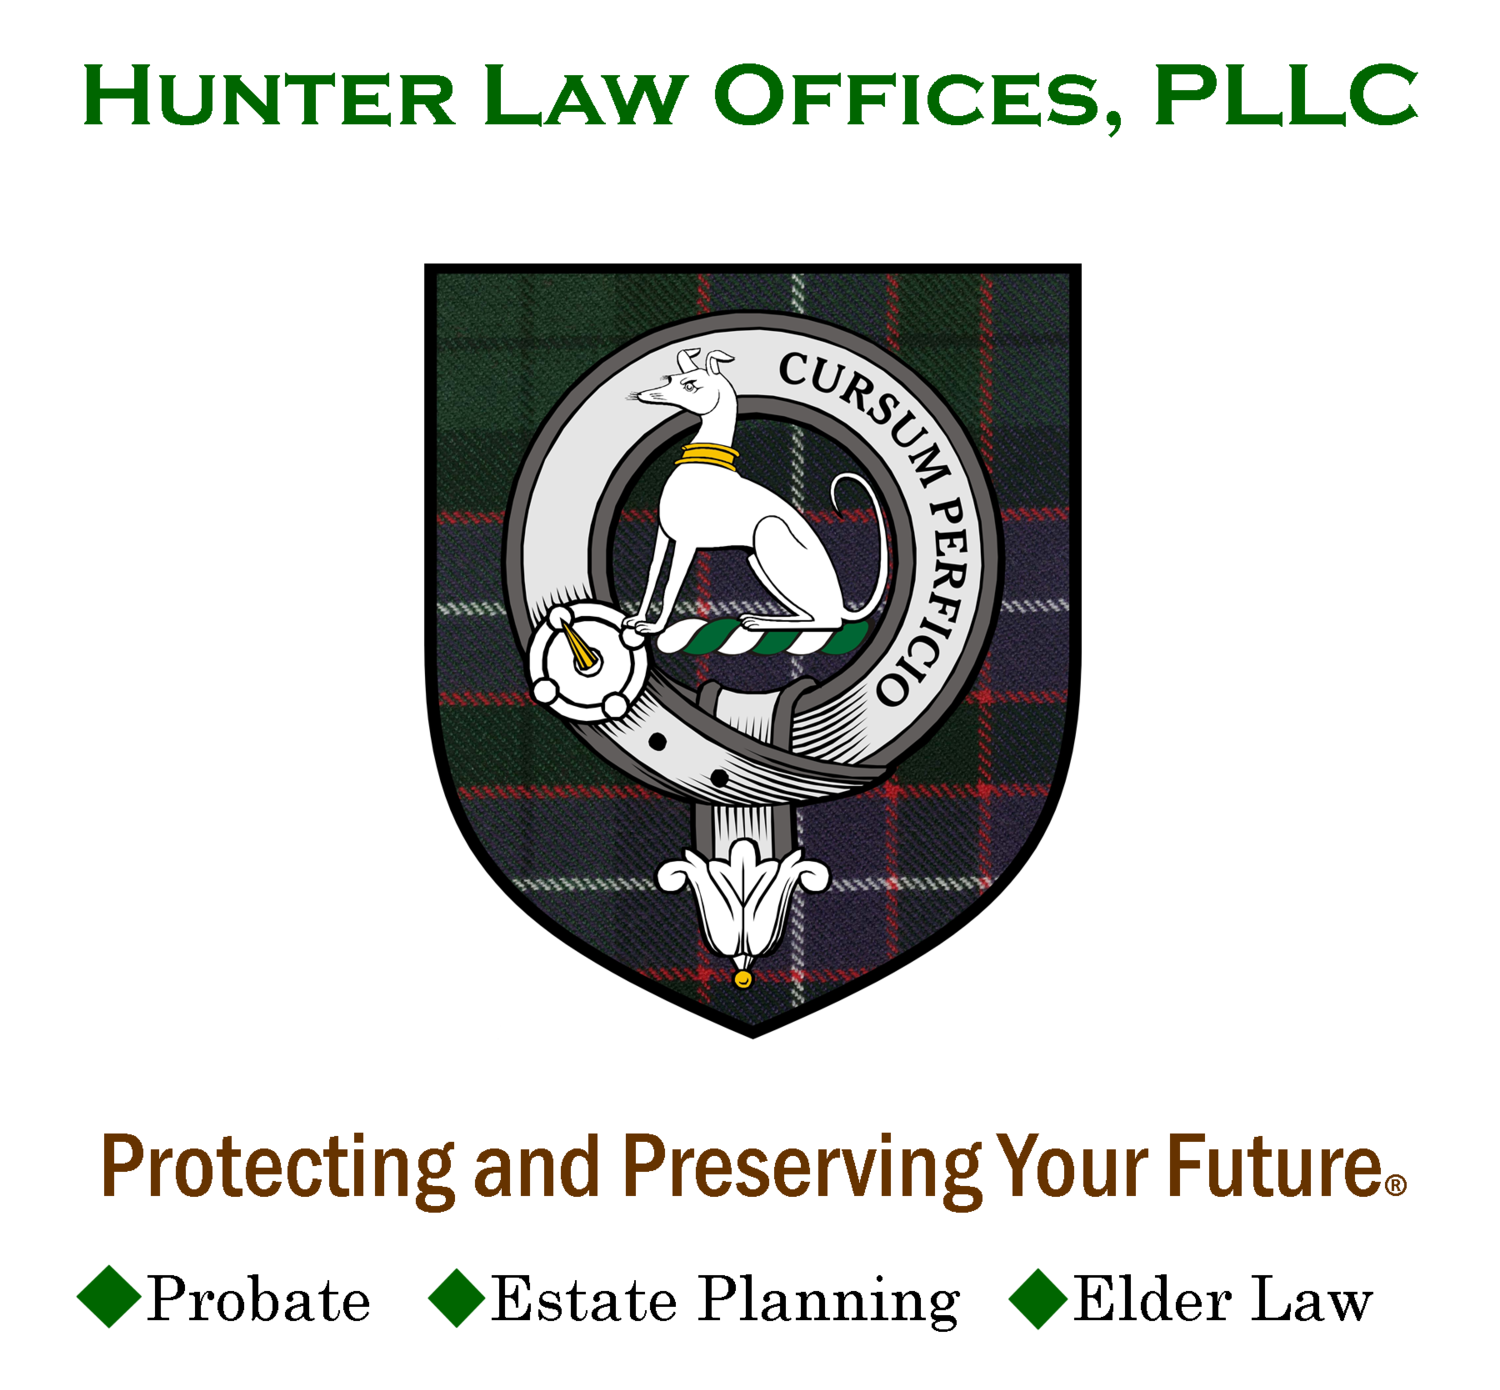 Hunter Law Offices, PLLC